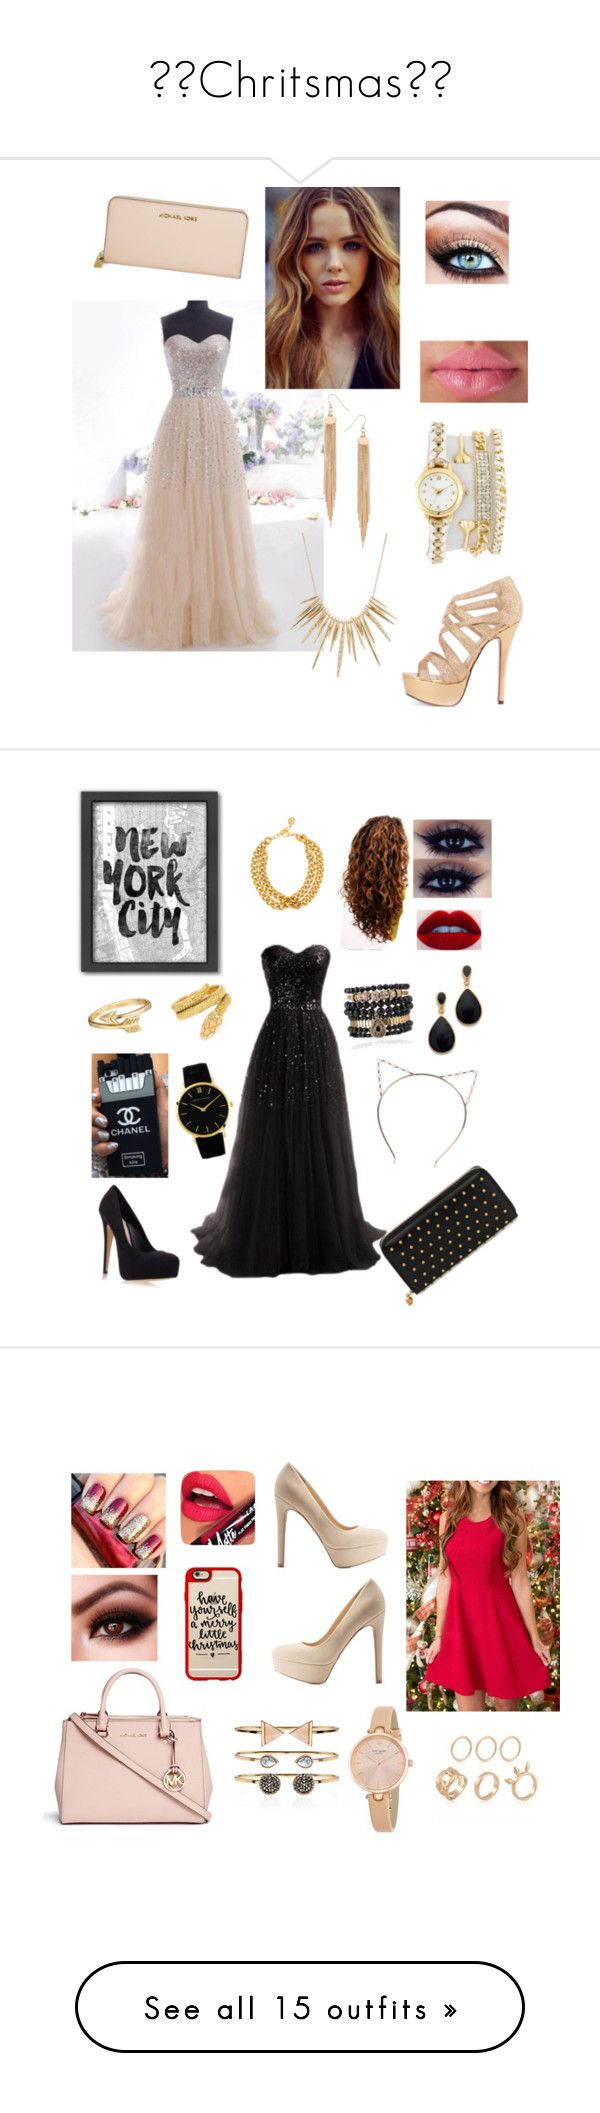 """🎄⛄Chritsmas⛄🎄"" by alaska-moore ❤ liked on Polyvore featuring Michael Kors, Alexis Bittar, Dorothy Perkins, Americanflat, Carvela Kurt Geiger, Samantha Wills, Kenneth Jay Lane, Bling Jewelry, Cartier and Boohoo"